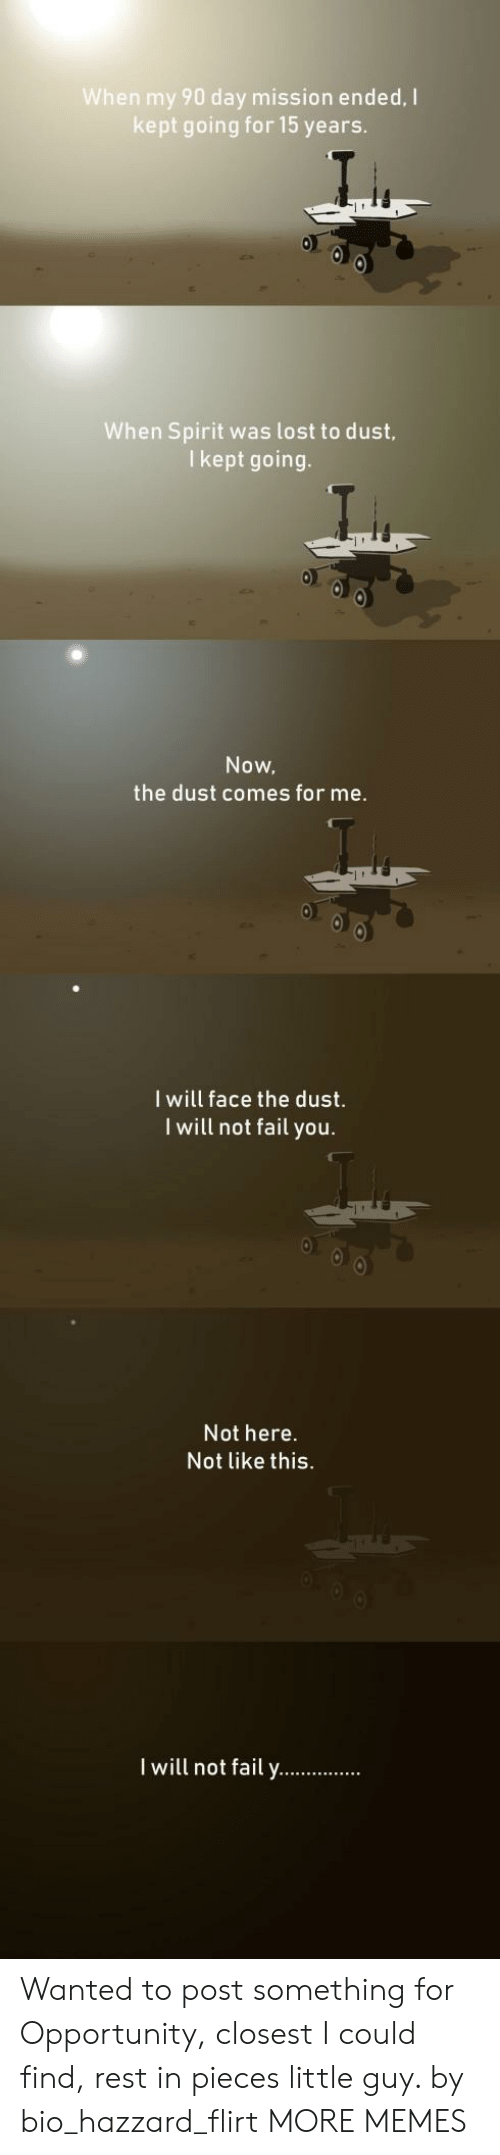 Dank, Fail, and Memes: When my 90 day mission ended, I  kept going for 15 years.  When Spirit was lost to dust,  I kept going.  Now,  the dust comes for me.  I will face the dust.  I will not fail you.  Not here.  Not like this.  I will not fail y. Wanted to post something for Opportunity, closest I could find, rest in pieces little guy. by bio_hazzard_flirt MORE MEMES